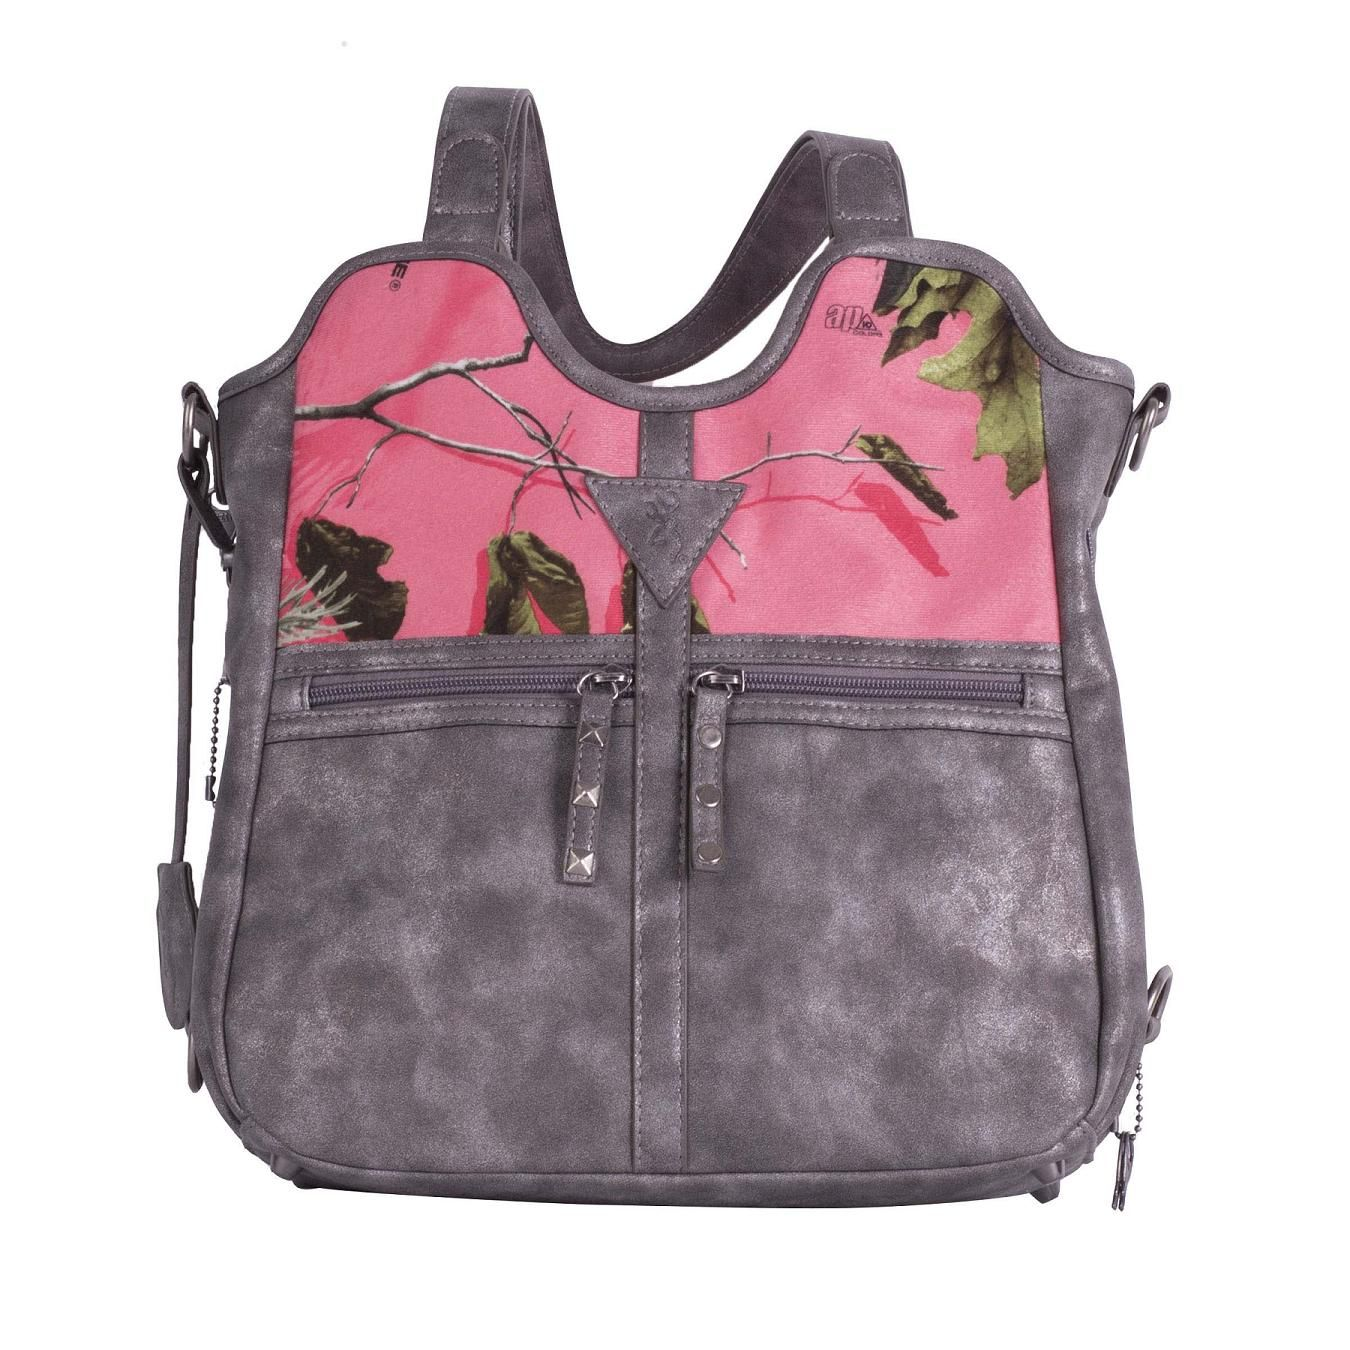 Browning Concealed Carry Realtree Gun Purse - Carson | Girls and ...